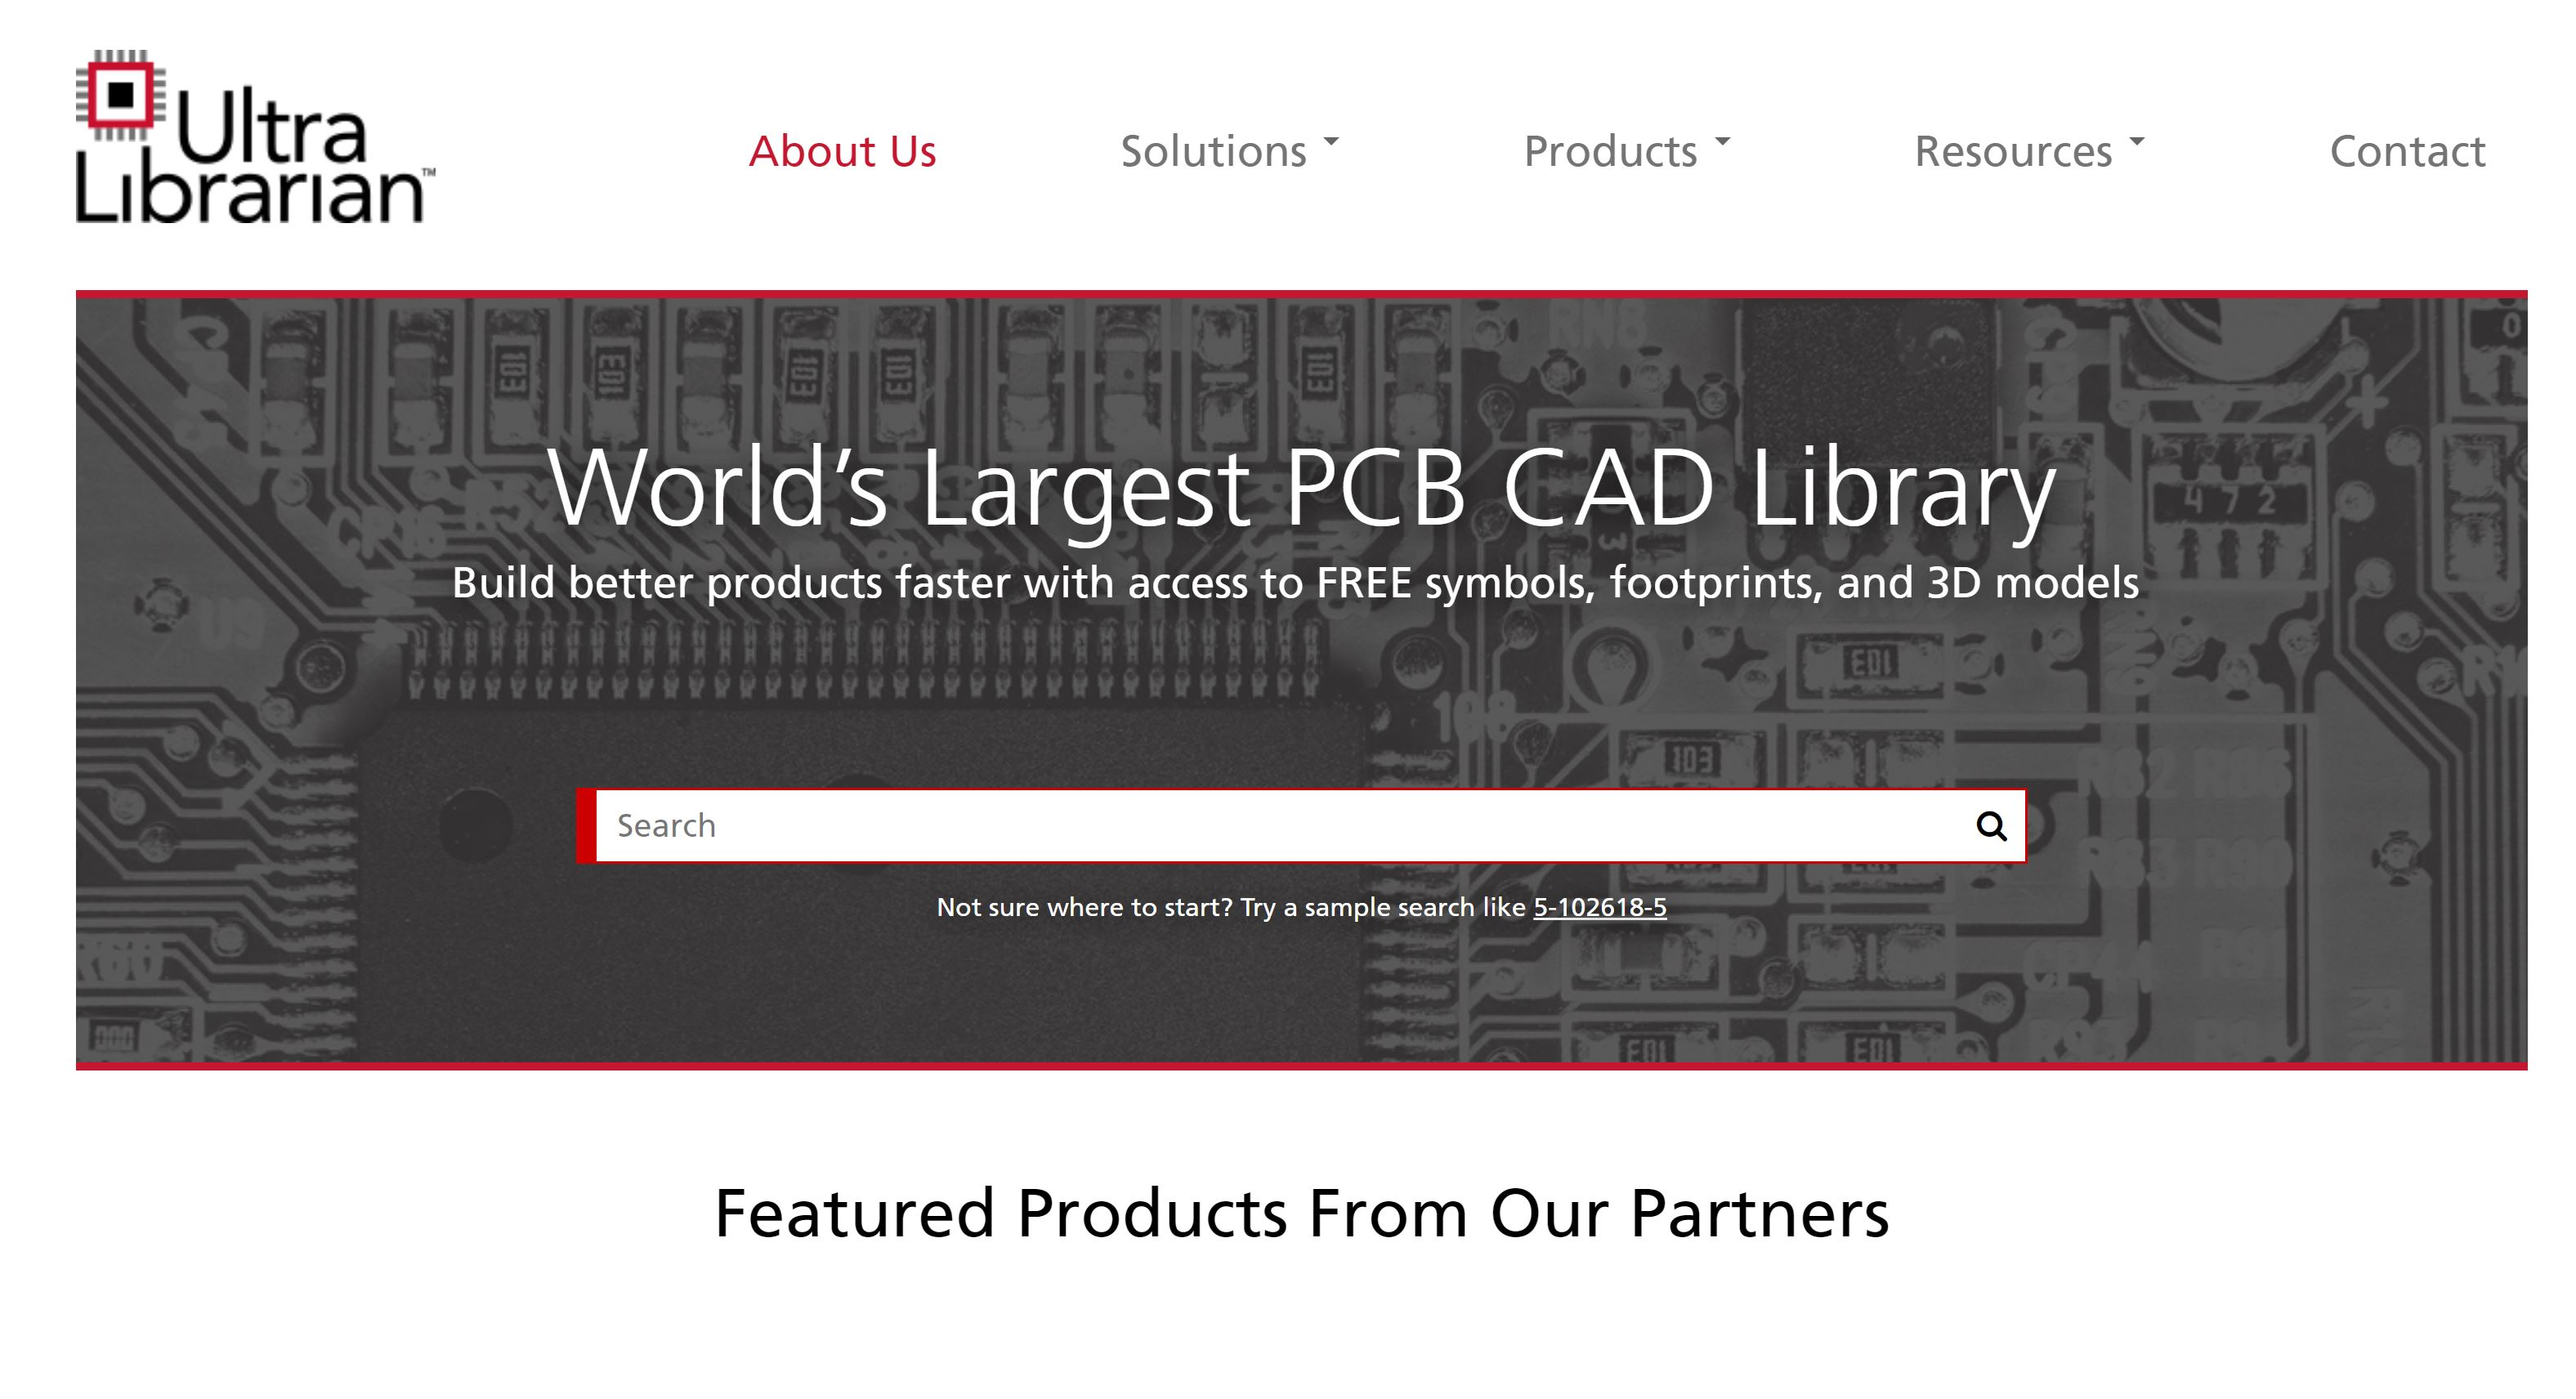 Ultra Librarian - World's Largest PCB CAD Library